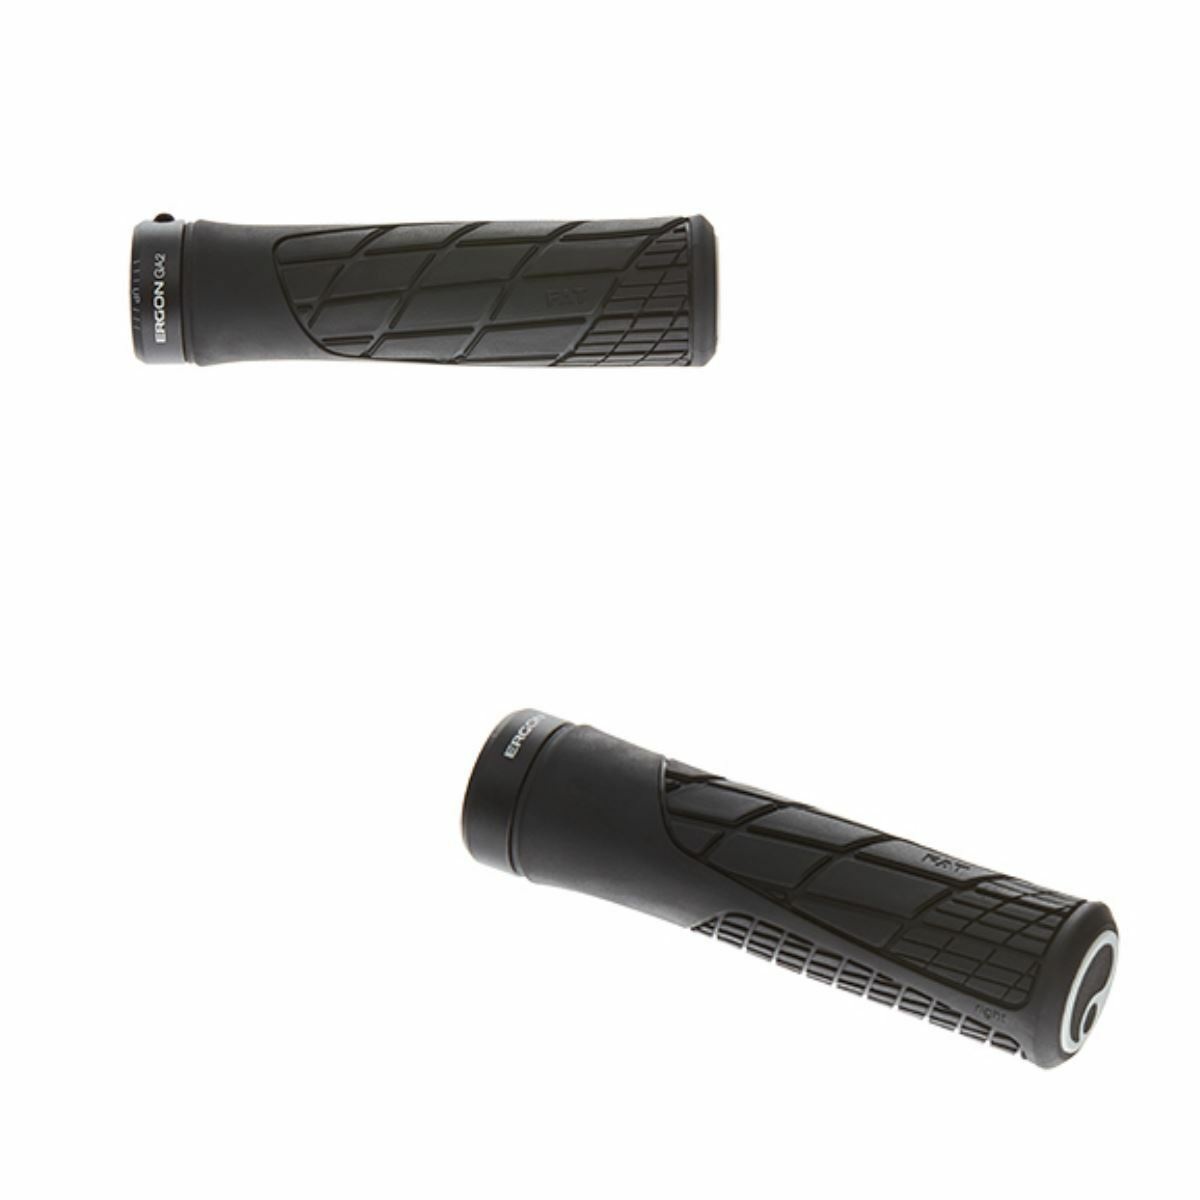 Ergon GA2 Fat MTB Manici  black Tour XC - Barra Maniglia Grips  outlet sale